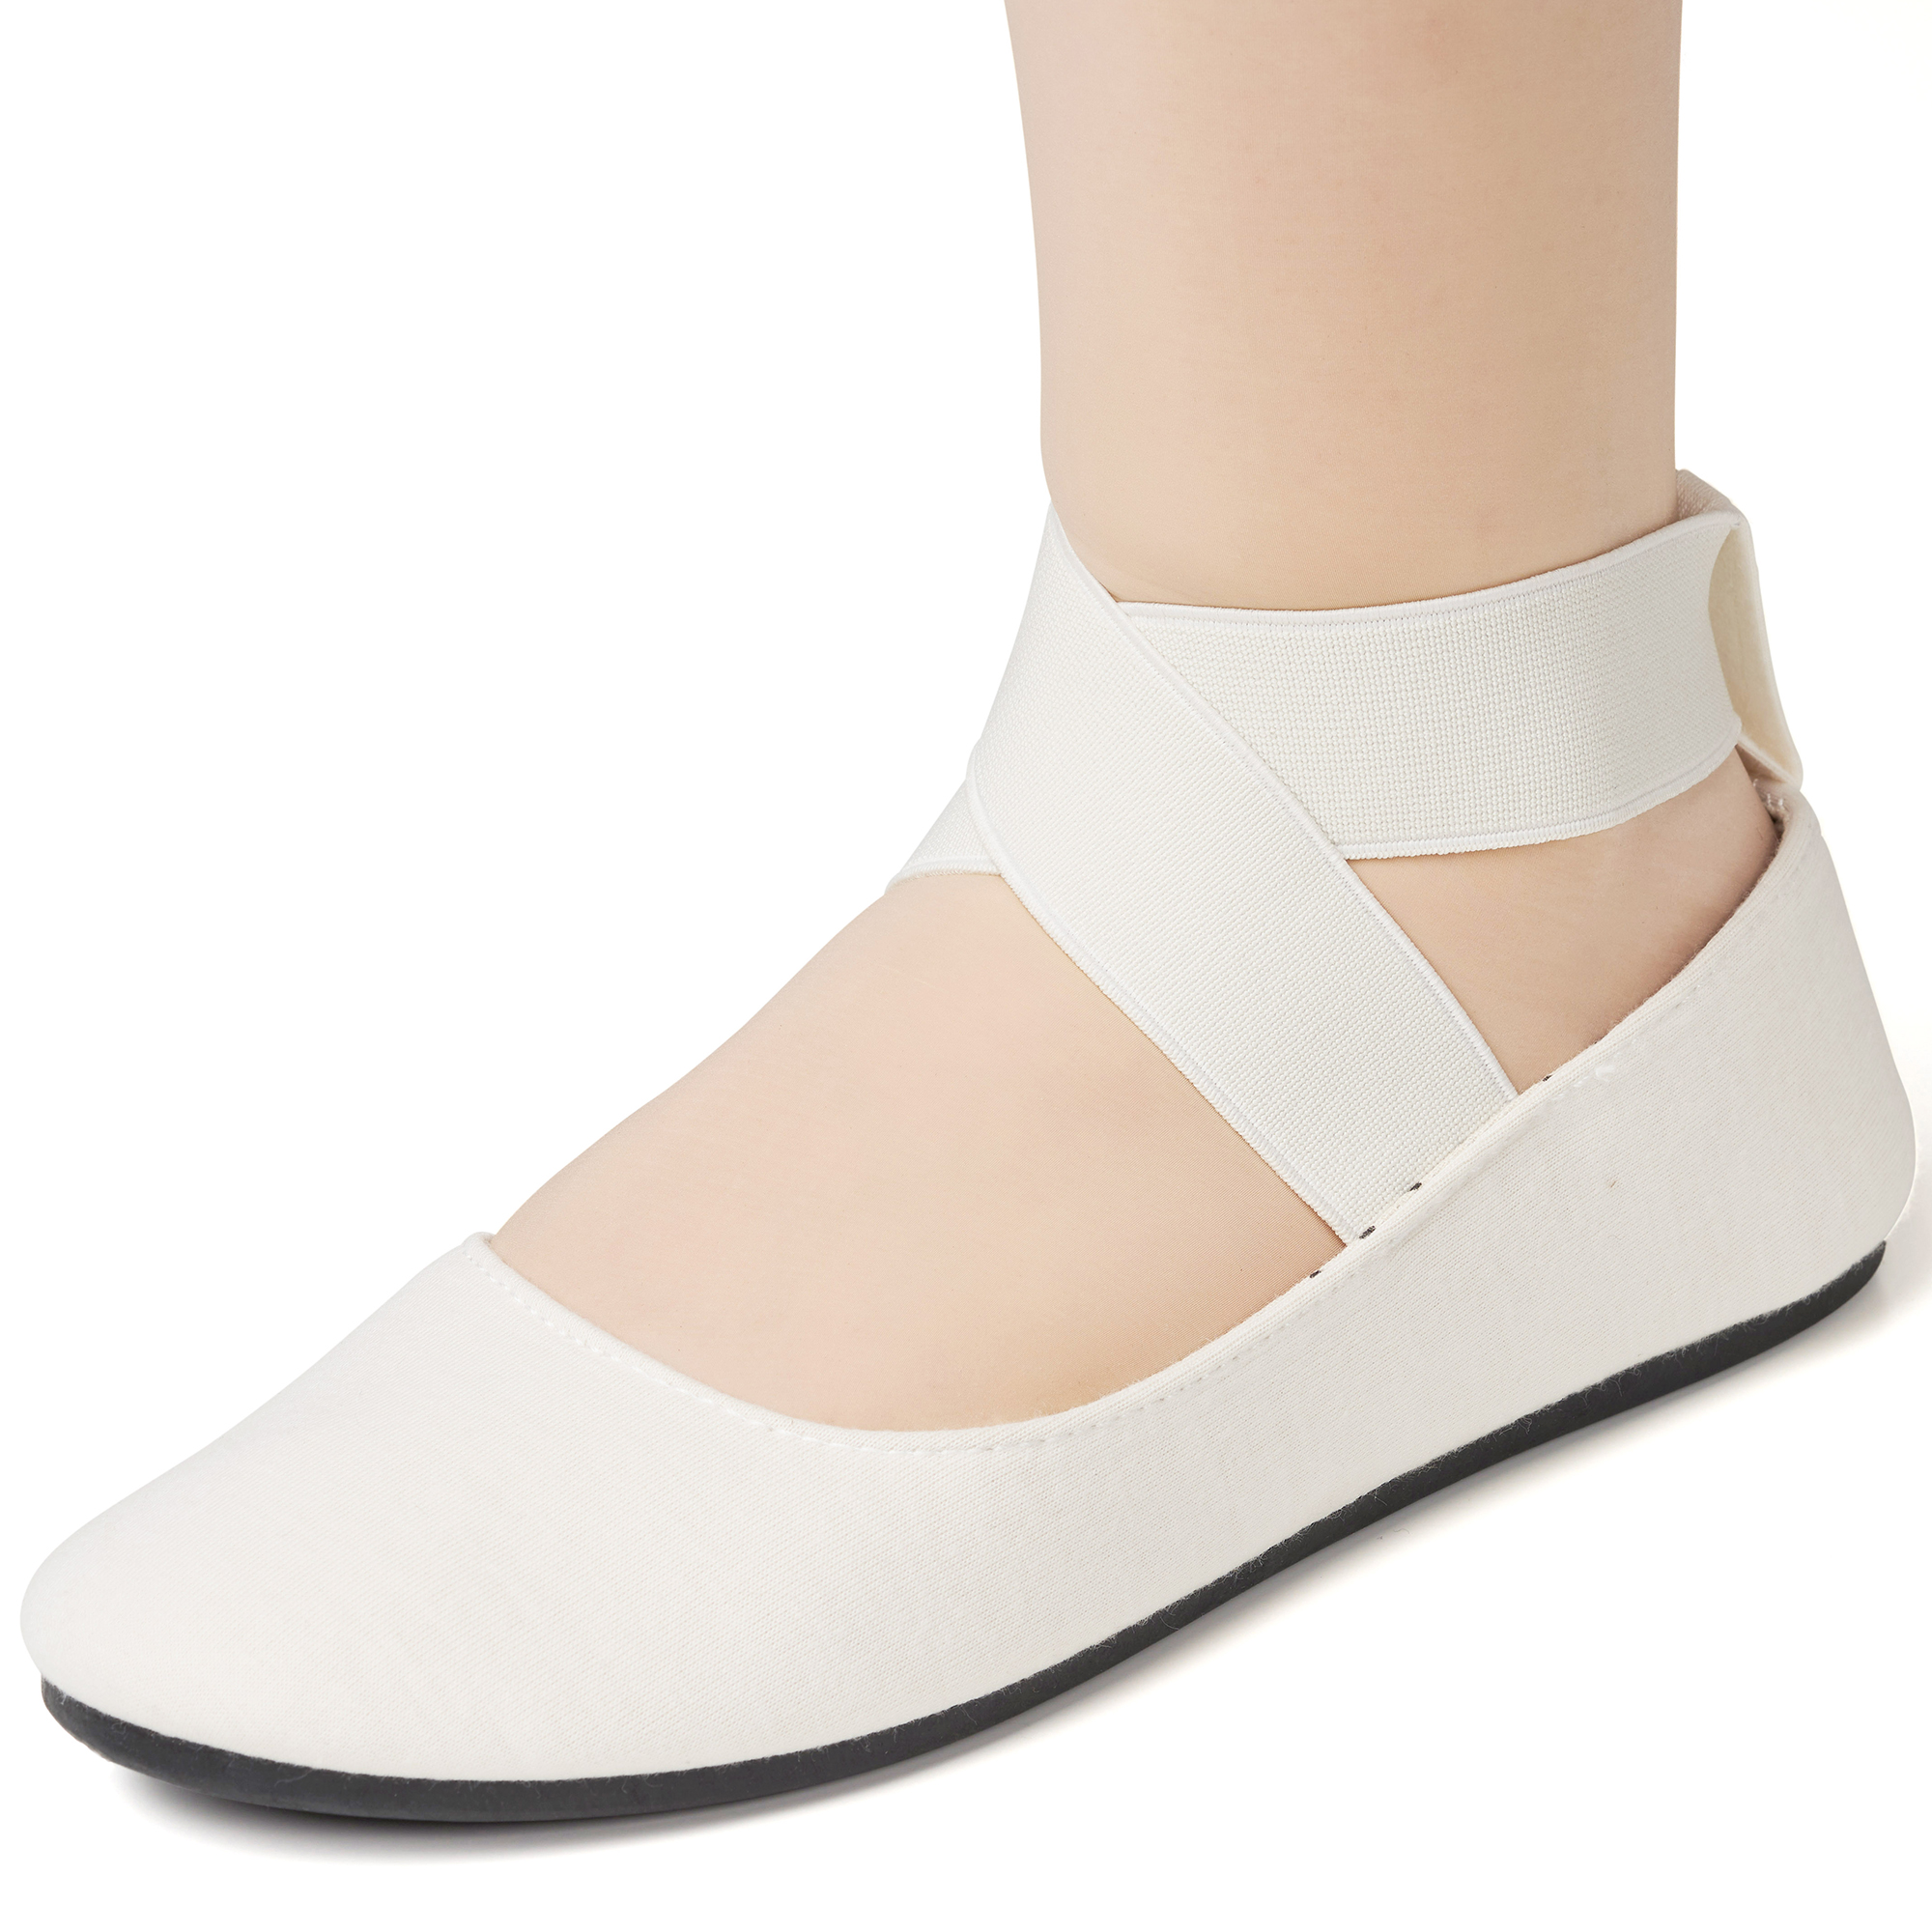 Alpine-Swiss-Peony-Womens-Ballet-Flats-Elastic-Ankle-Strap-Shoes-Slip-On-Loafers thumbnail 25